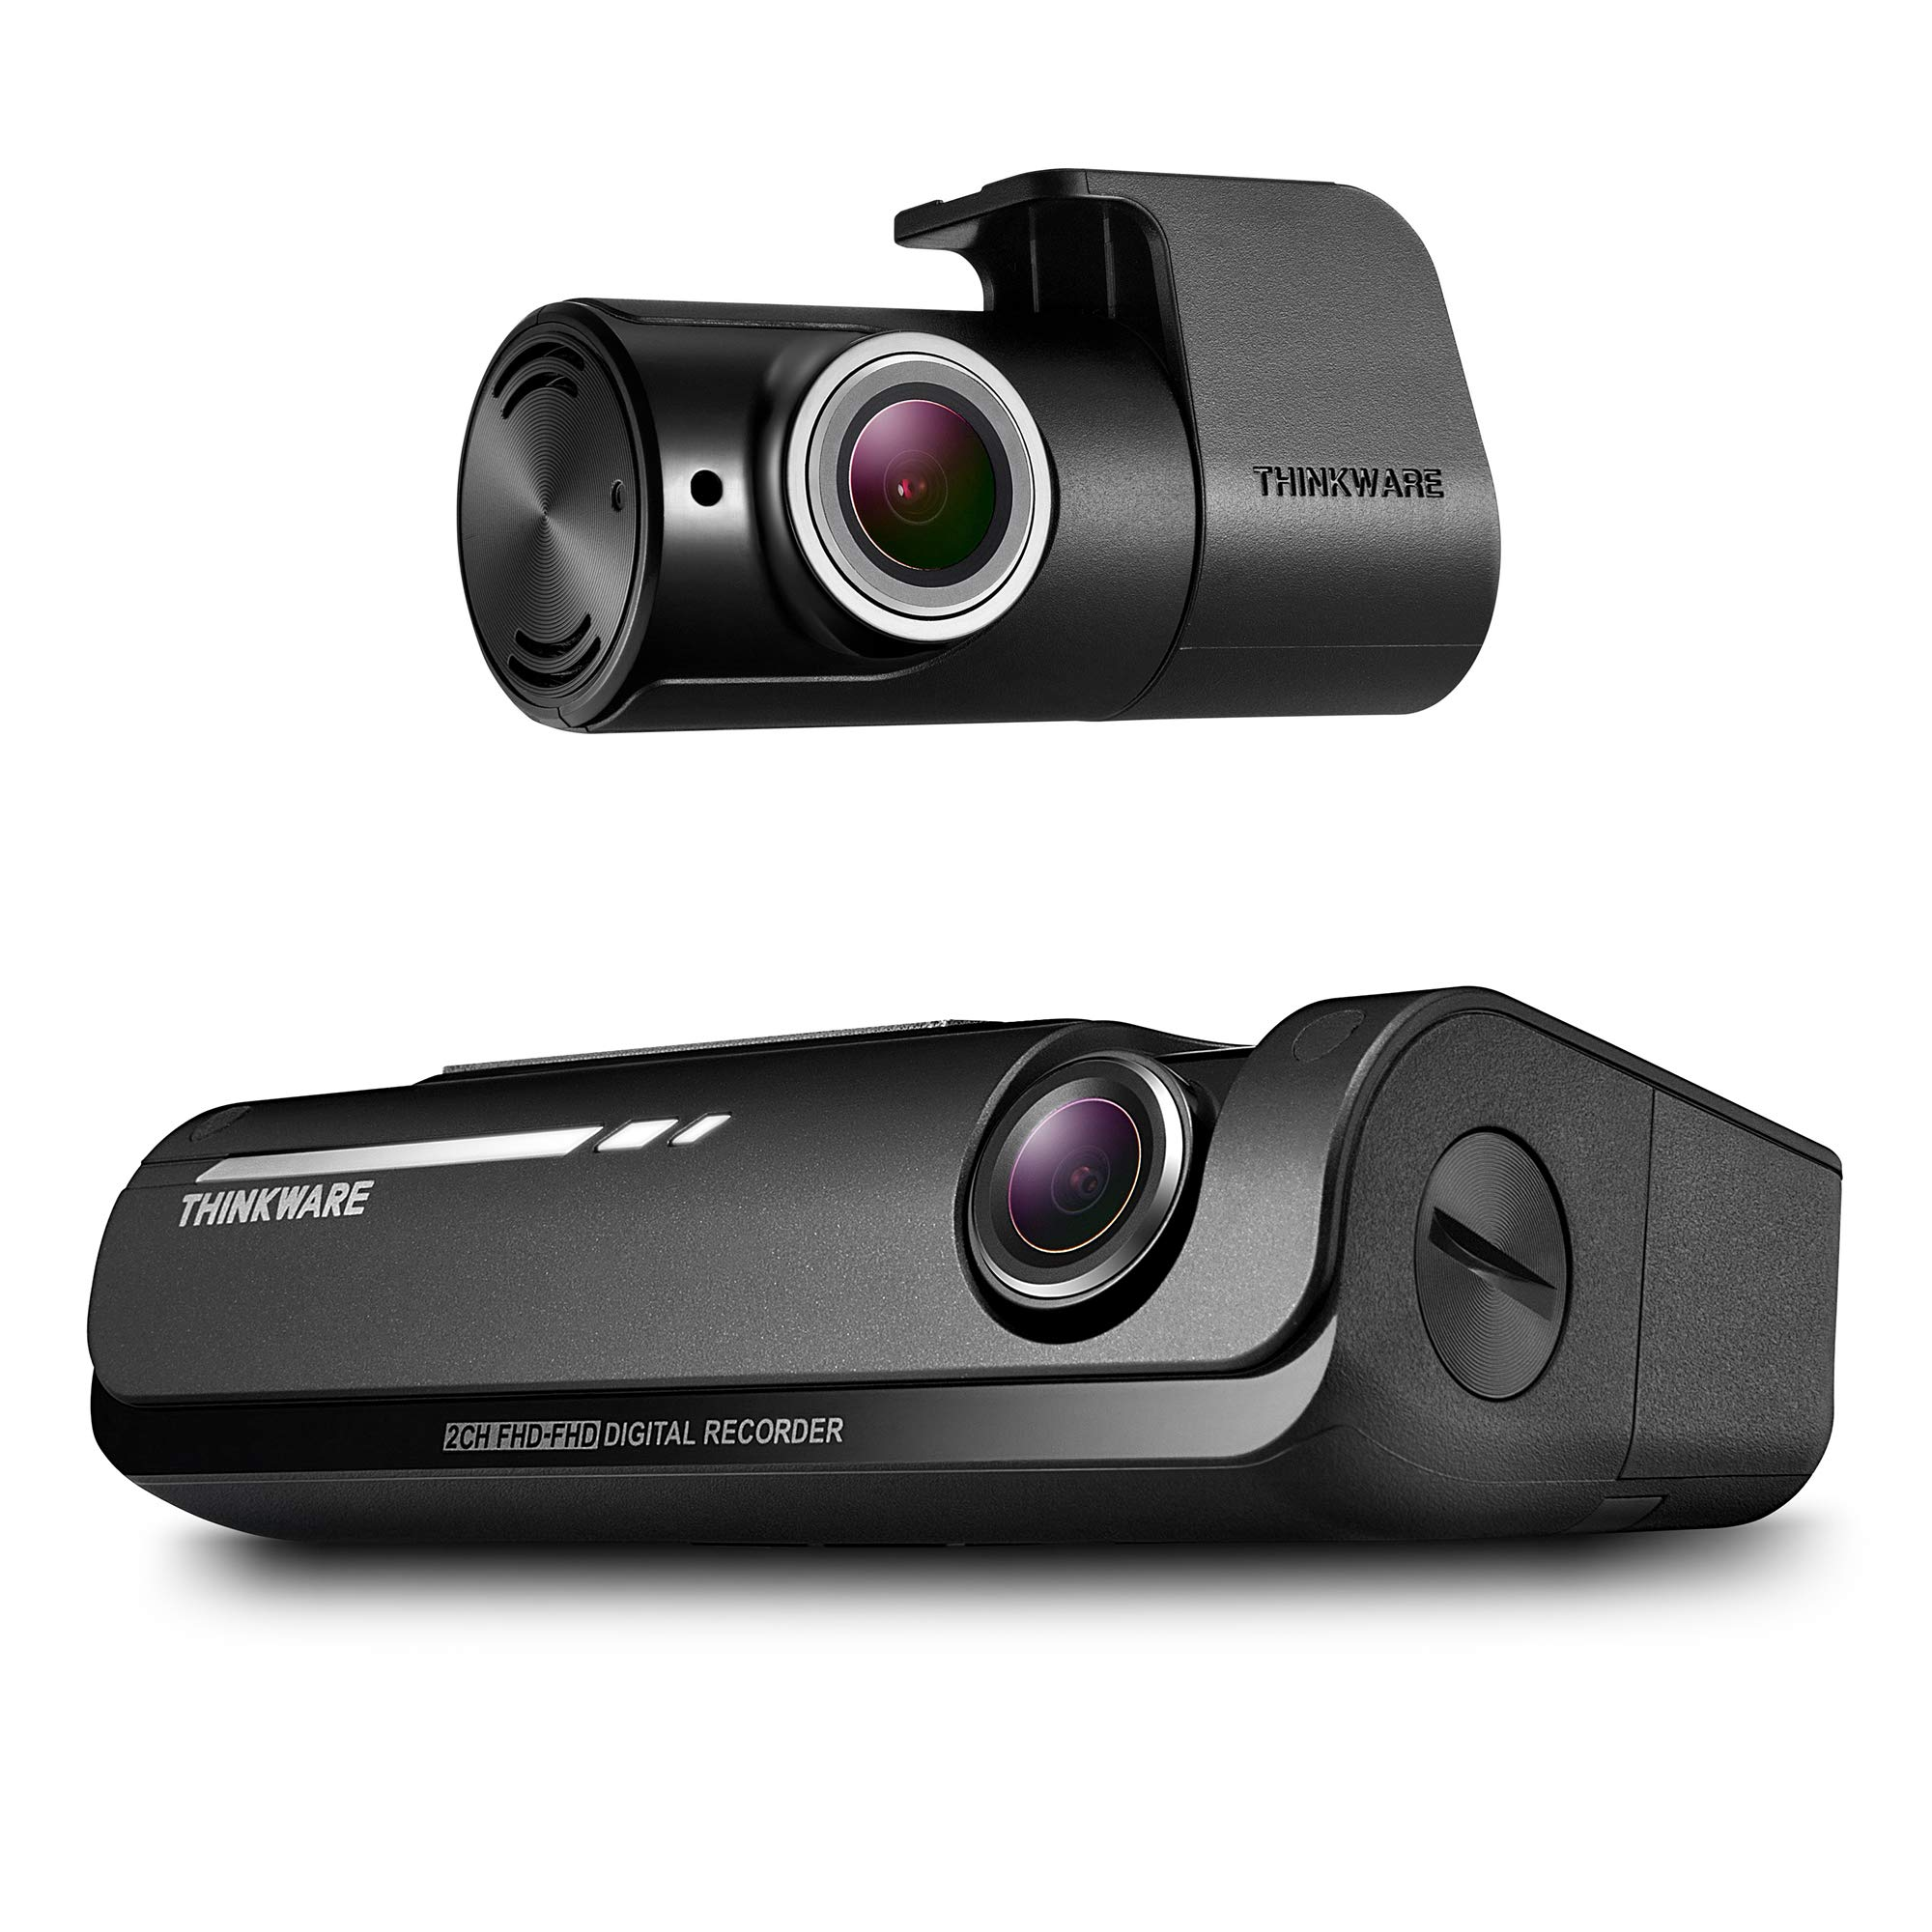 Thinkware F770 Dash Cam Full HD 1080p Front Car Camera Dashcam Super Night Vision Includes 16GB SD Card /& Cigarette Plug Car Charger Android//iOS App